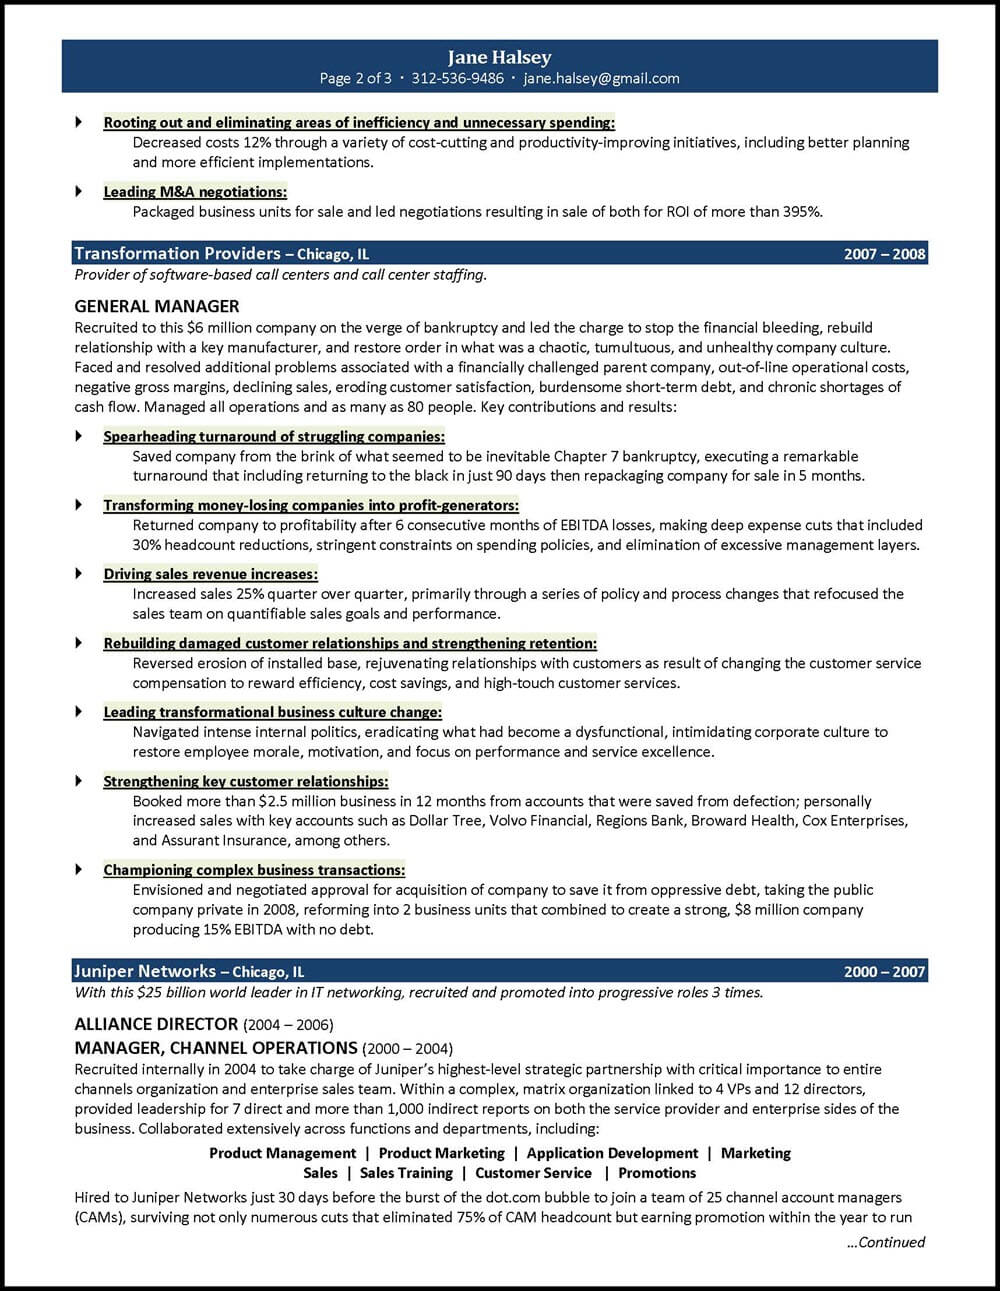 resume 2 2 a brief written account of personal, educational, and professional qualifications and experience, as that prepared by a job applicant.